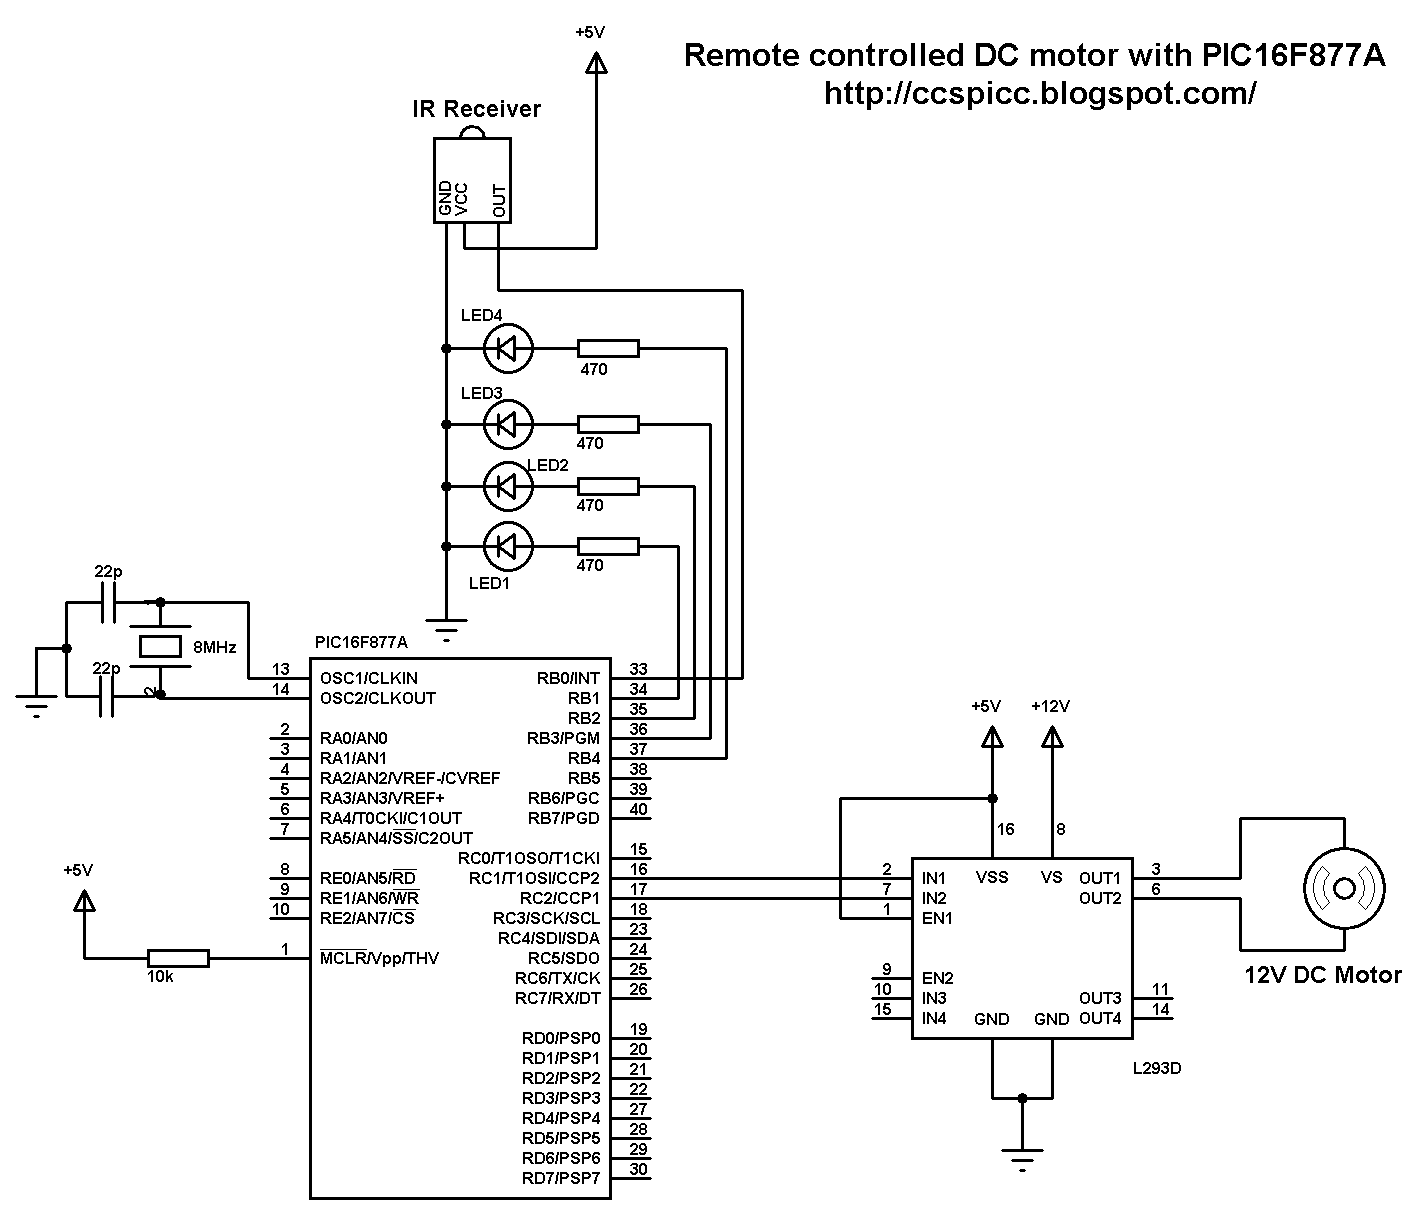 Remote Controlled Dc Motor Using Pic16f877a Microcontroller L293d Circuit Rc5 Infra Red Ir Ccs Pic C